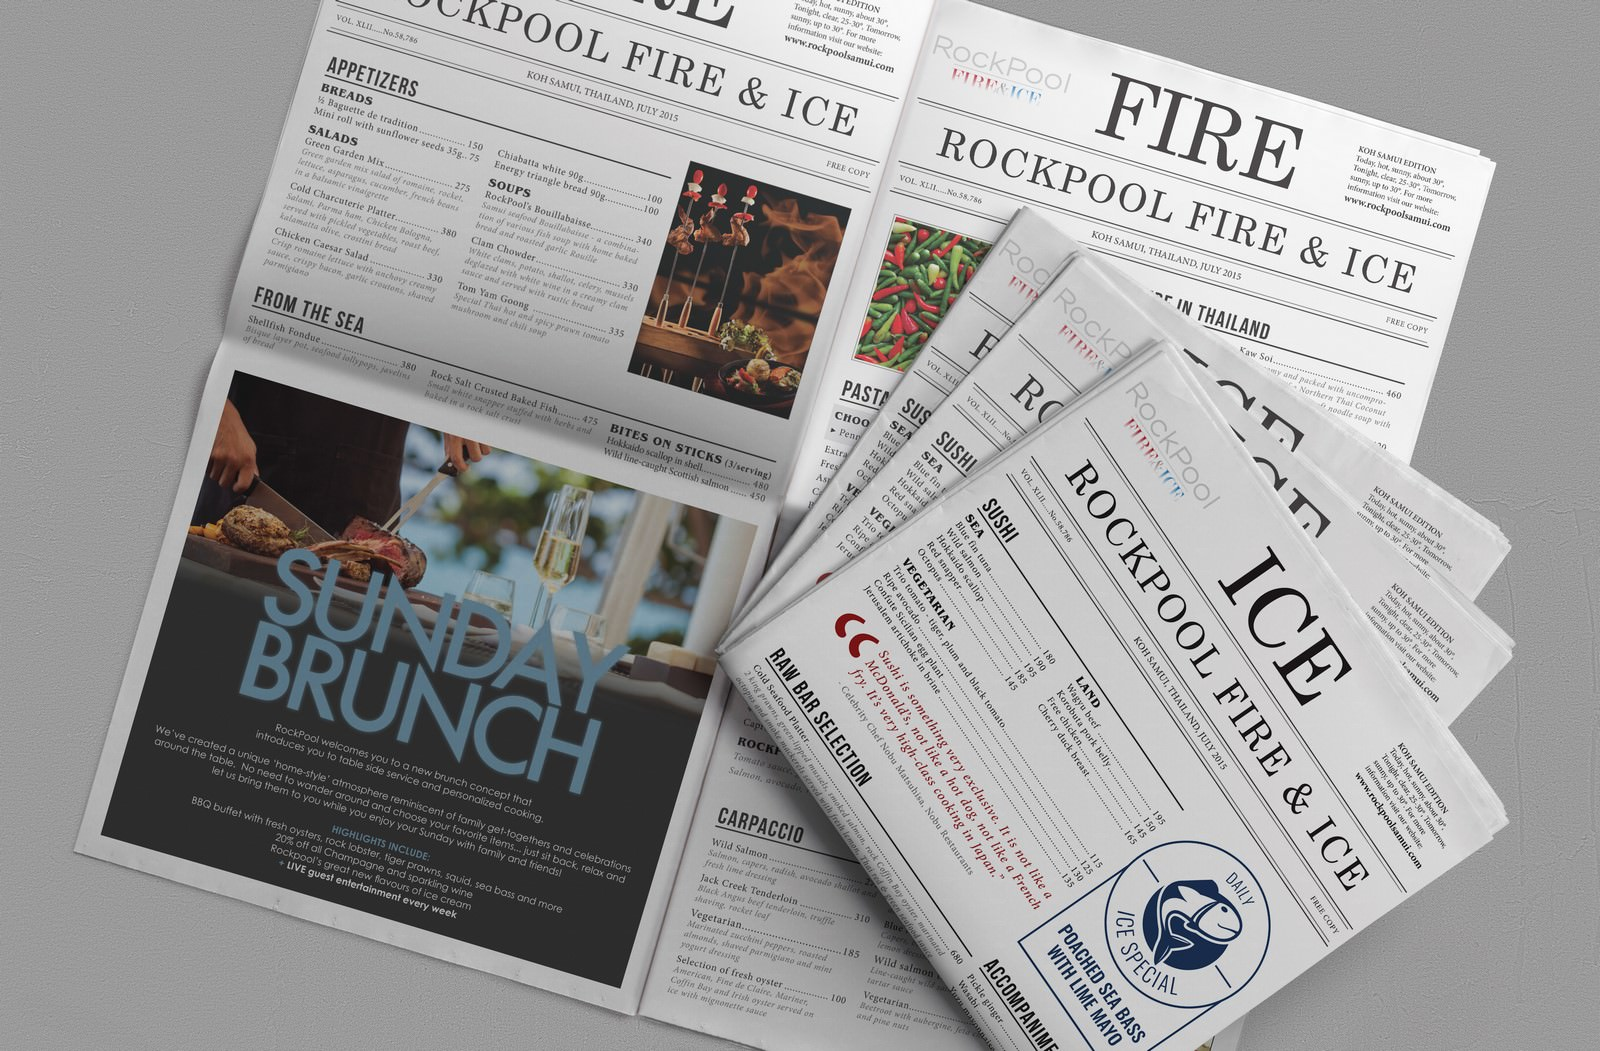 Newspaper-style Menu for RockPool Fire & Ice